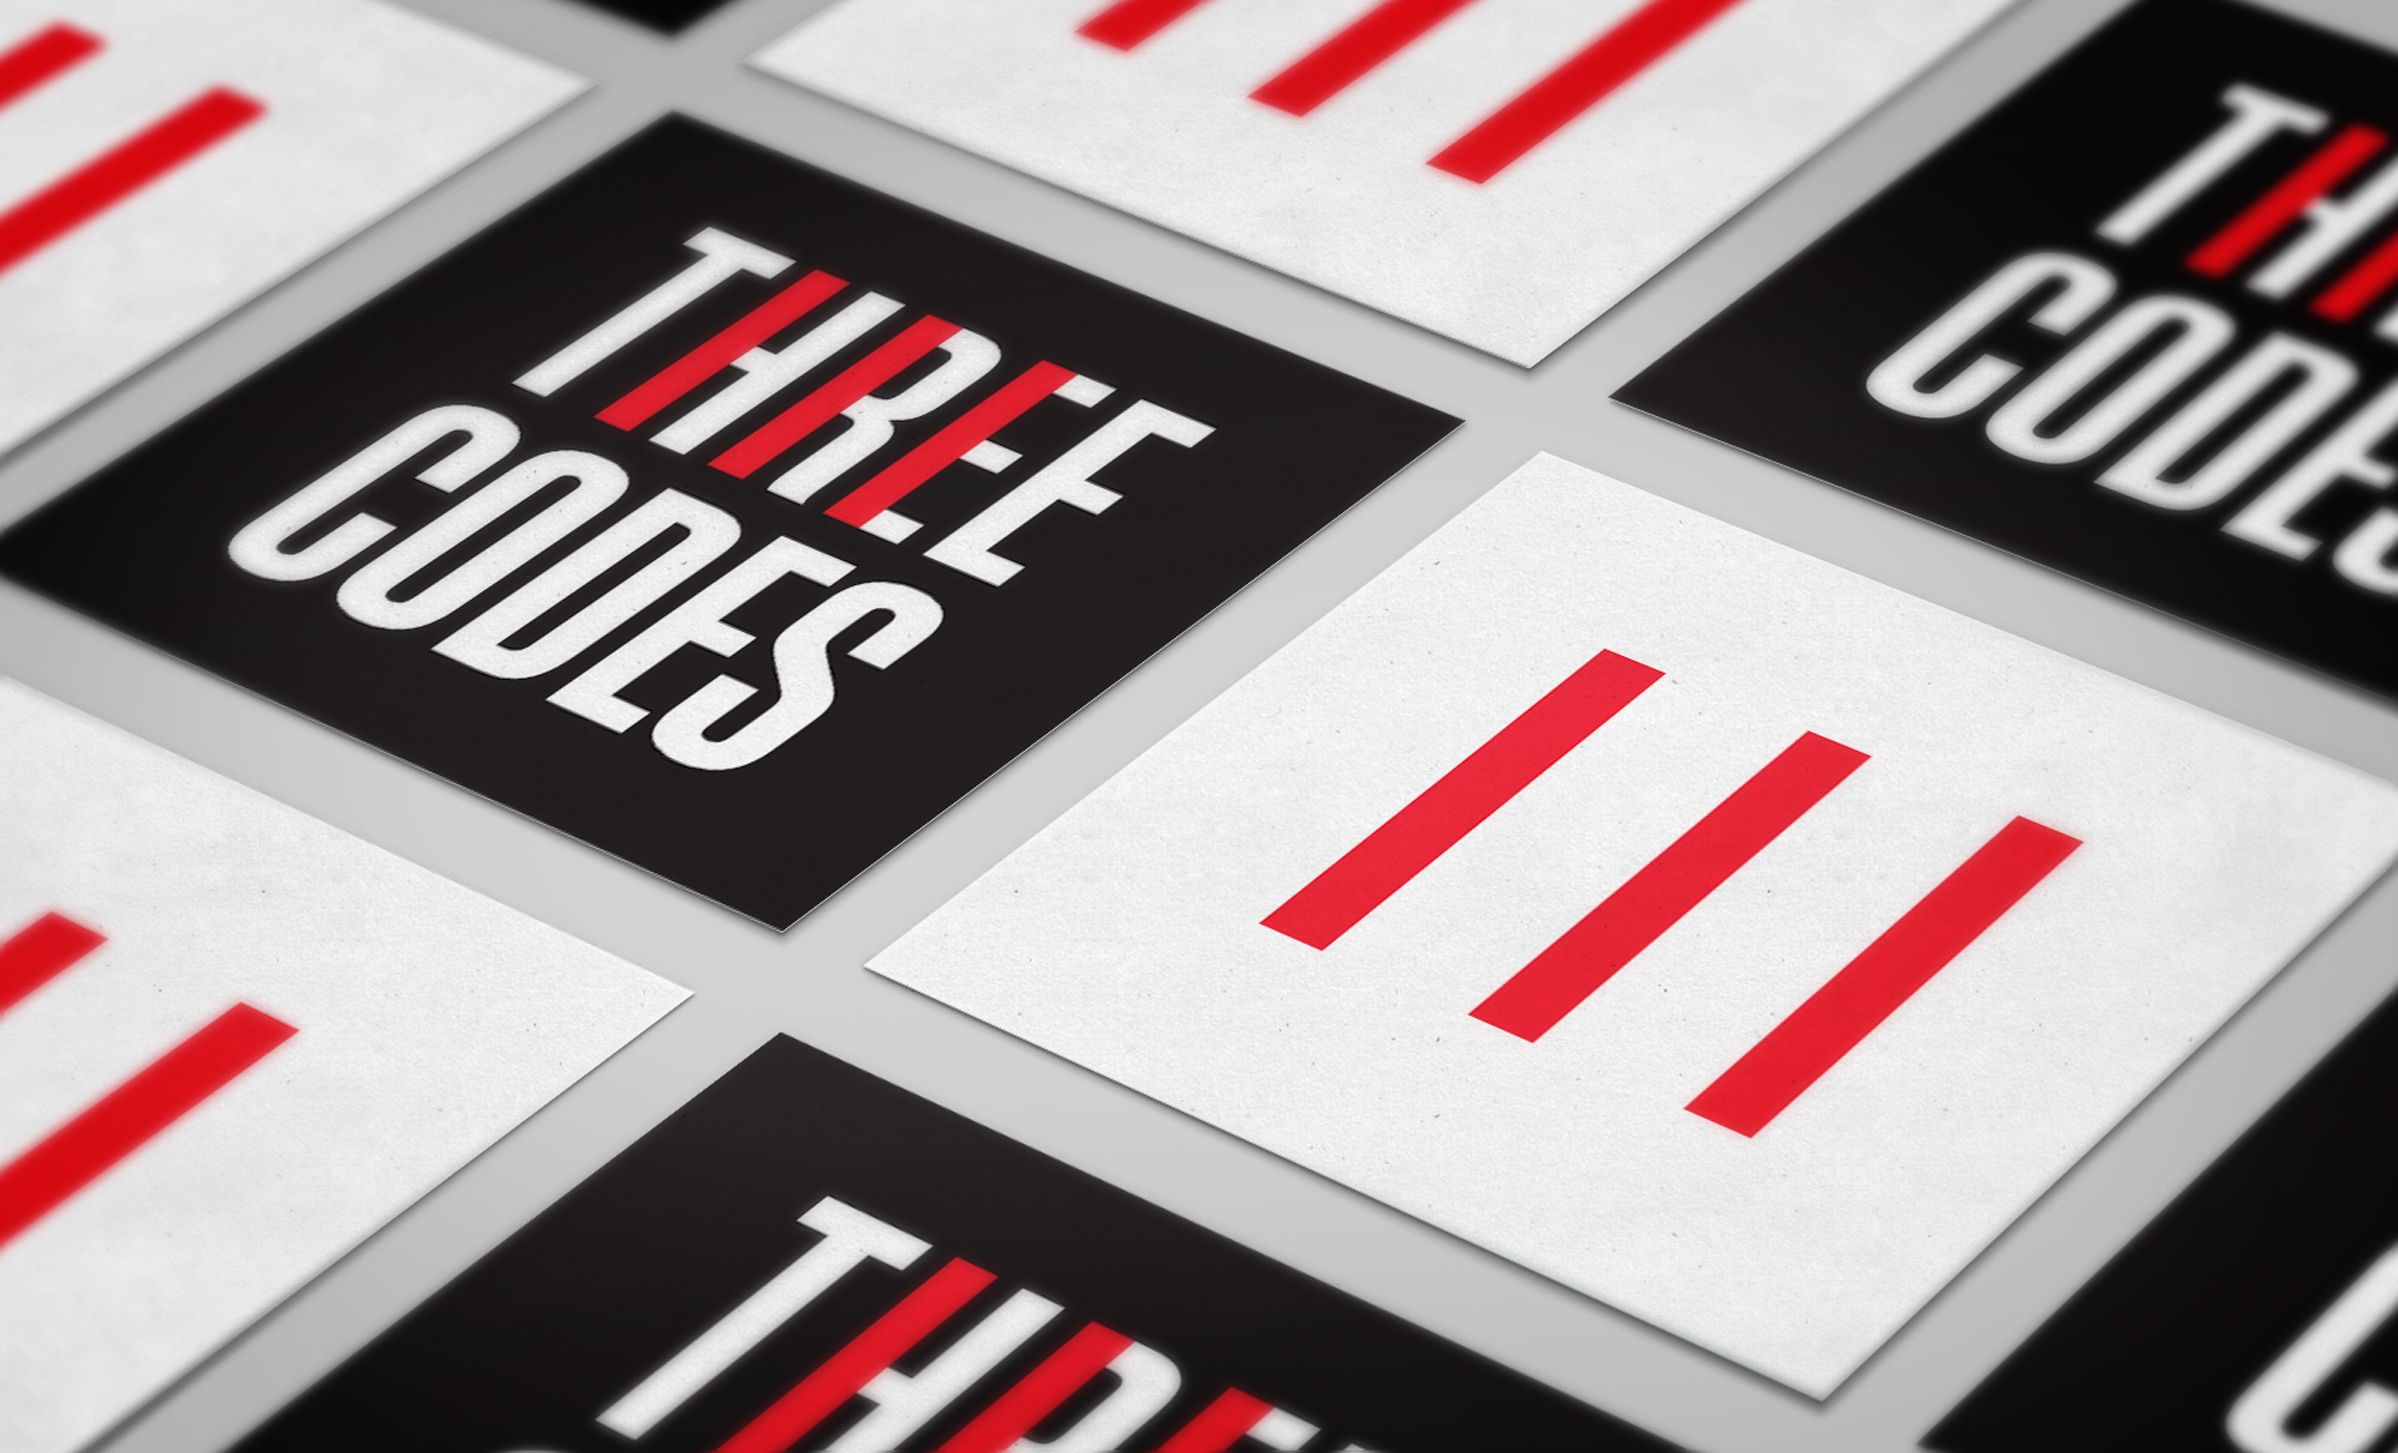 Stickers for Three Codes, an electrical company by Ottawa Graphic Designer idApostle